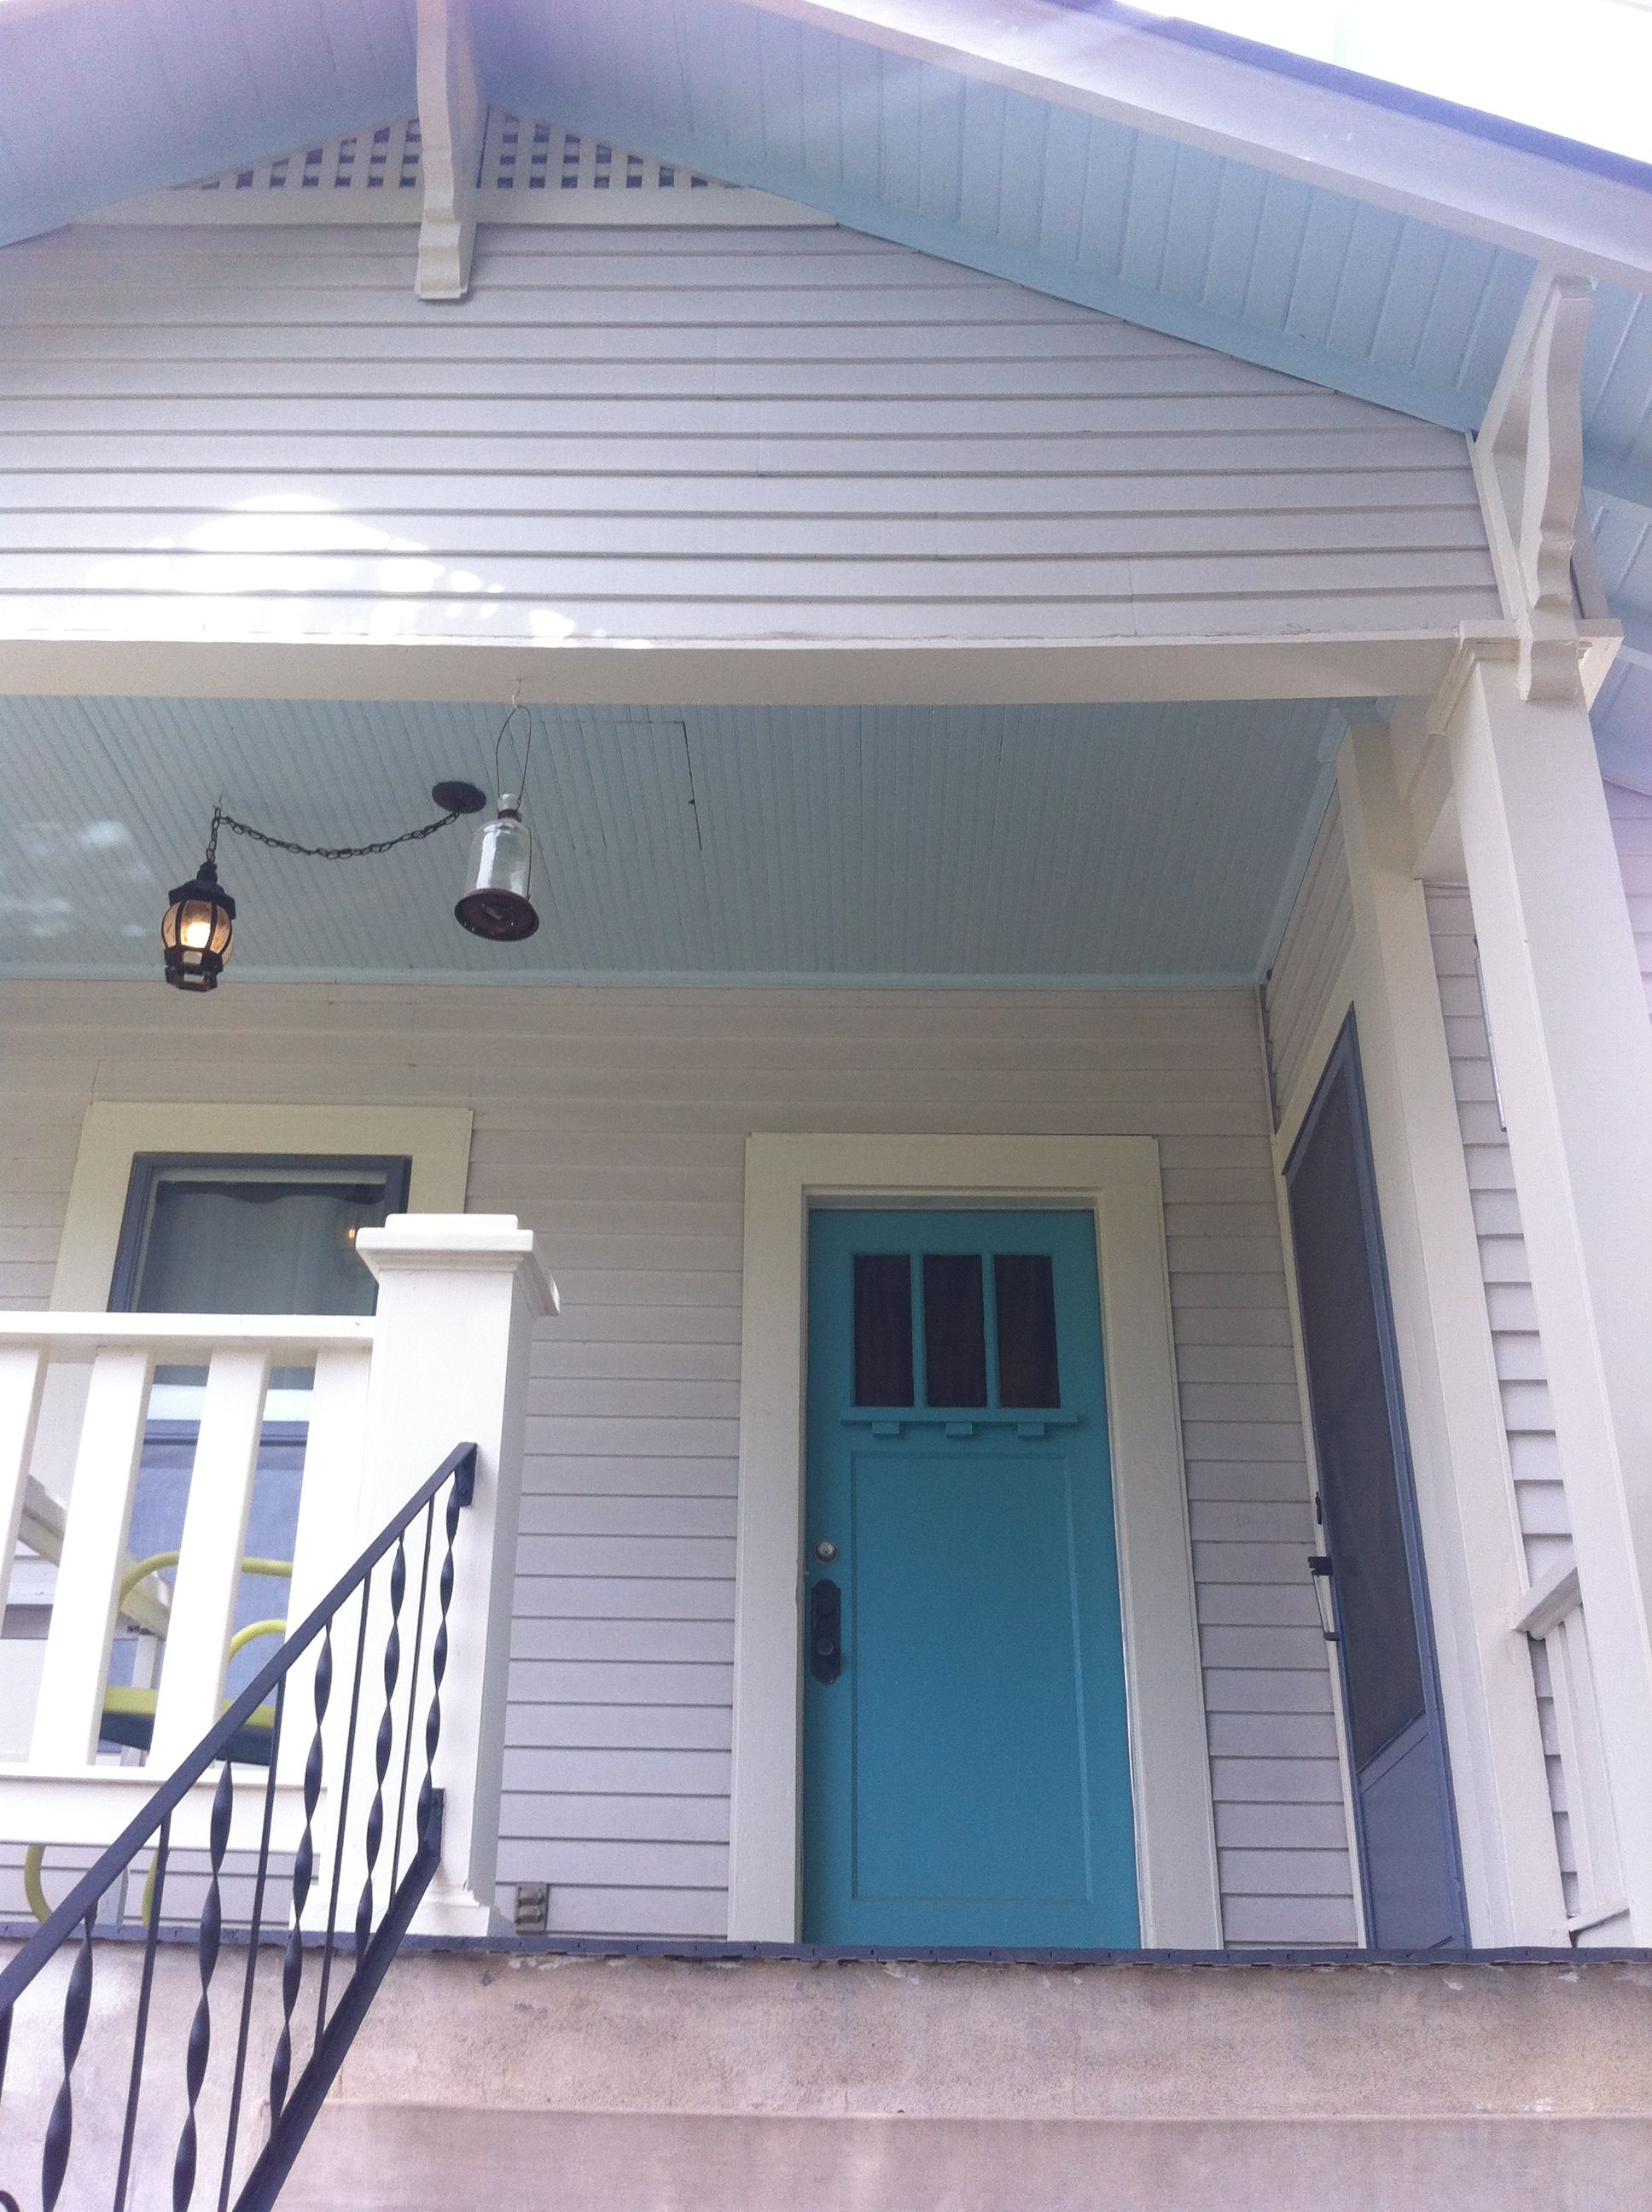 Light Gray Almost White House Turquoise Door With Pale Blue Porch Ceiling House Exterior Blue Porch Ceiling Turquoise Door